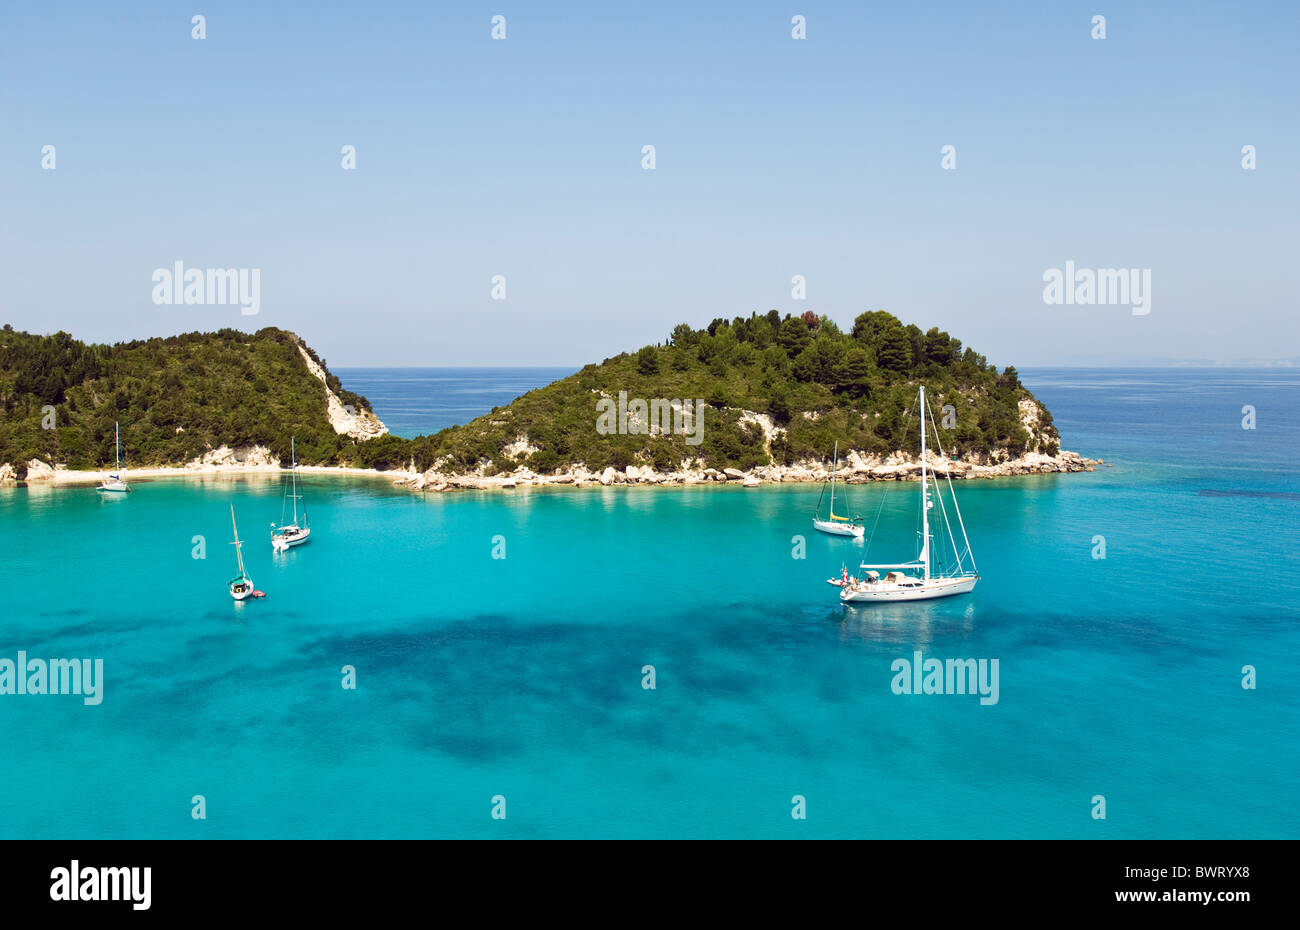 A view of beautiful Lakka Harbour on the island of Paxos in Greece. Stock Photo